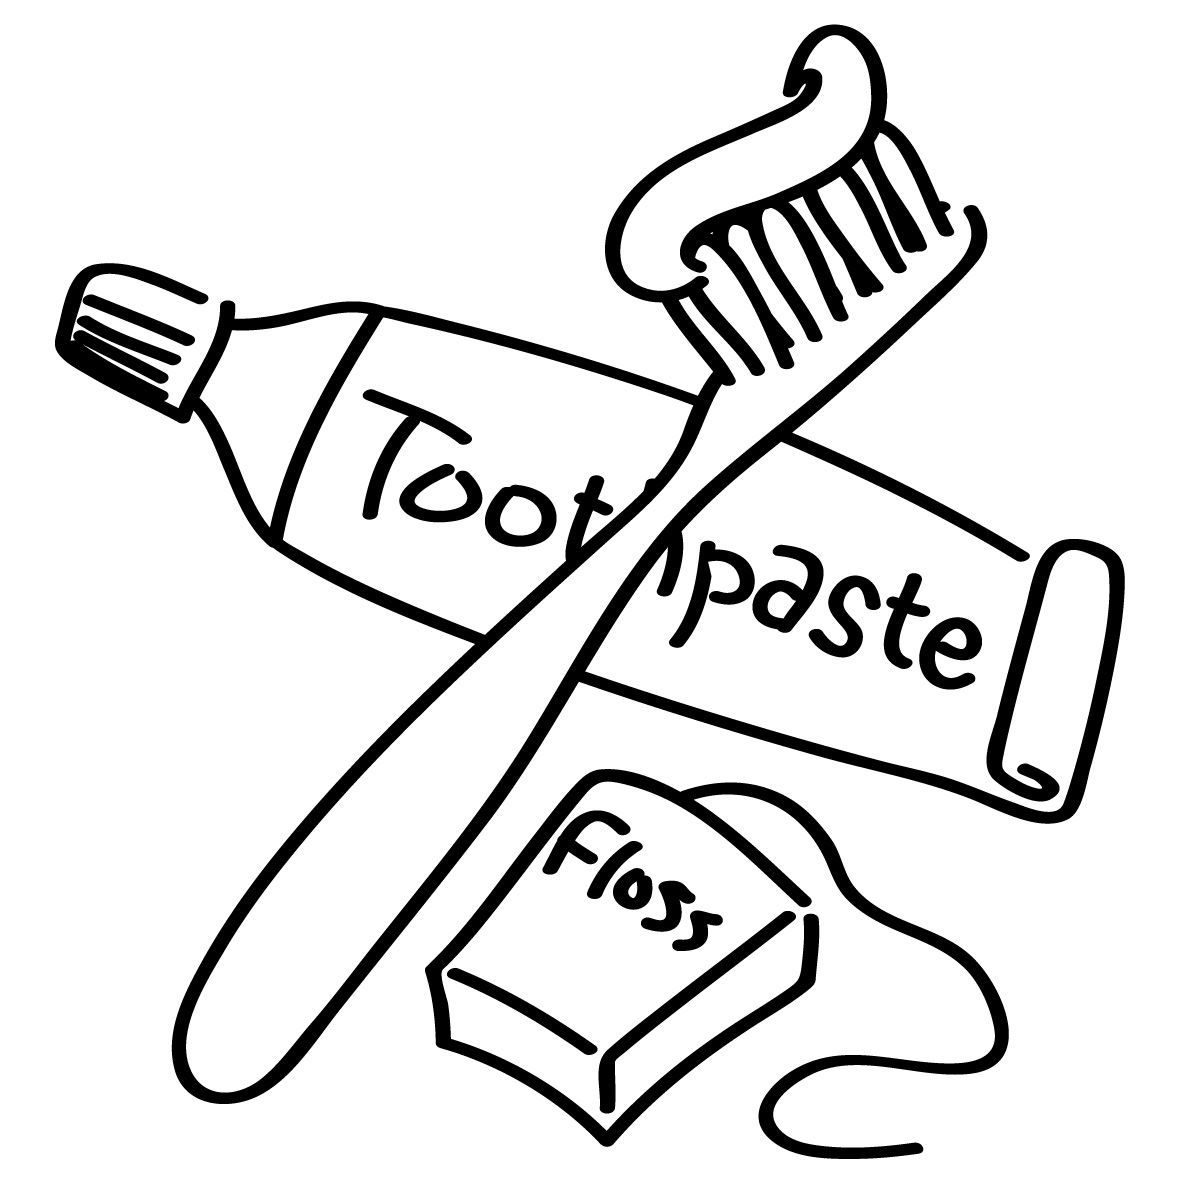 1200x1200 Awesome Toothbrush Clipart Coloring Page Pencil And In Color